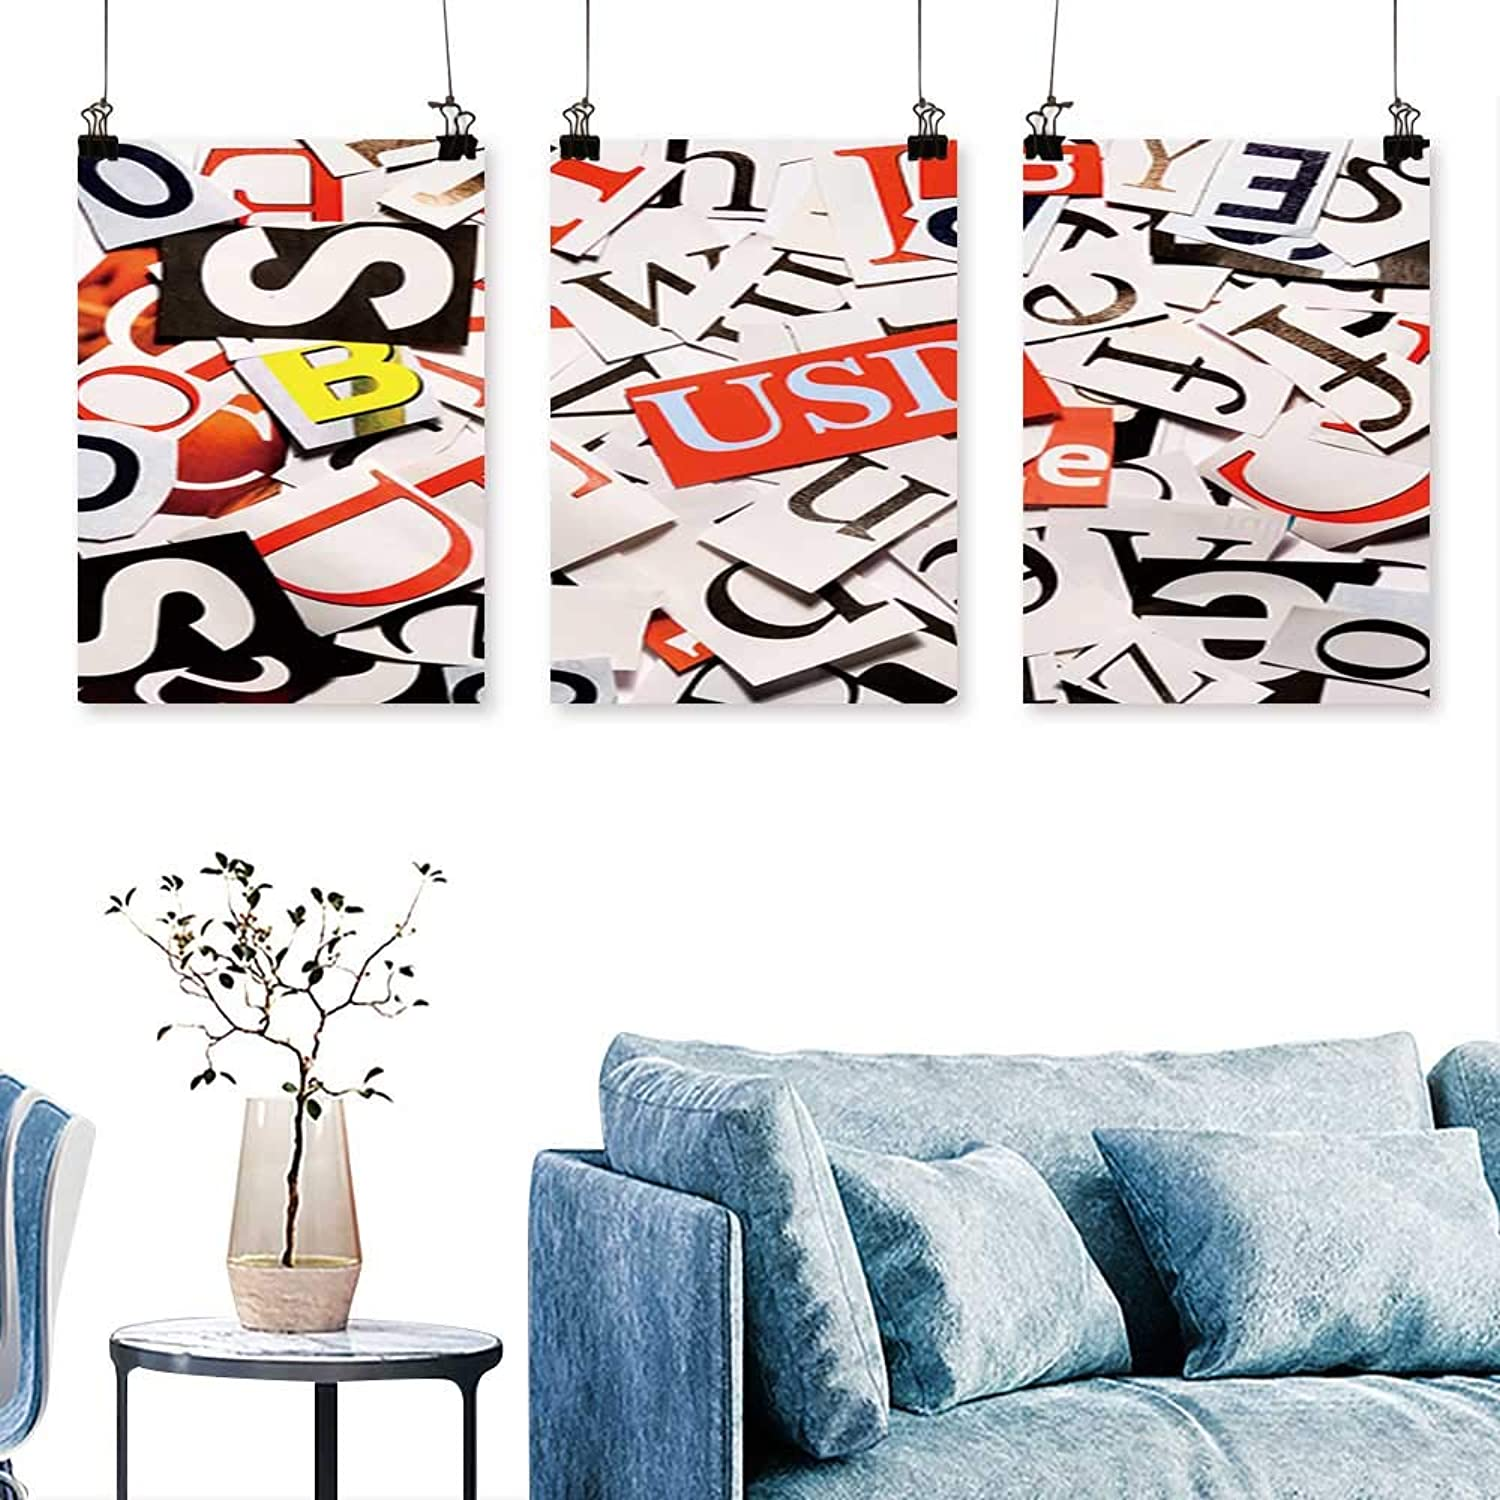 SCOCICI1588 3 Panels Triptych Letters Cut from Newspaper,Background for Home Modern Decoration No Frame 30 INCH X 60 INCH X 3PCS